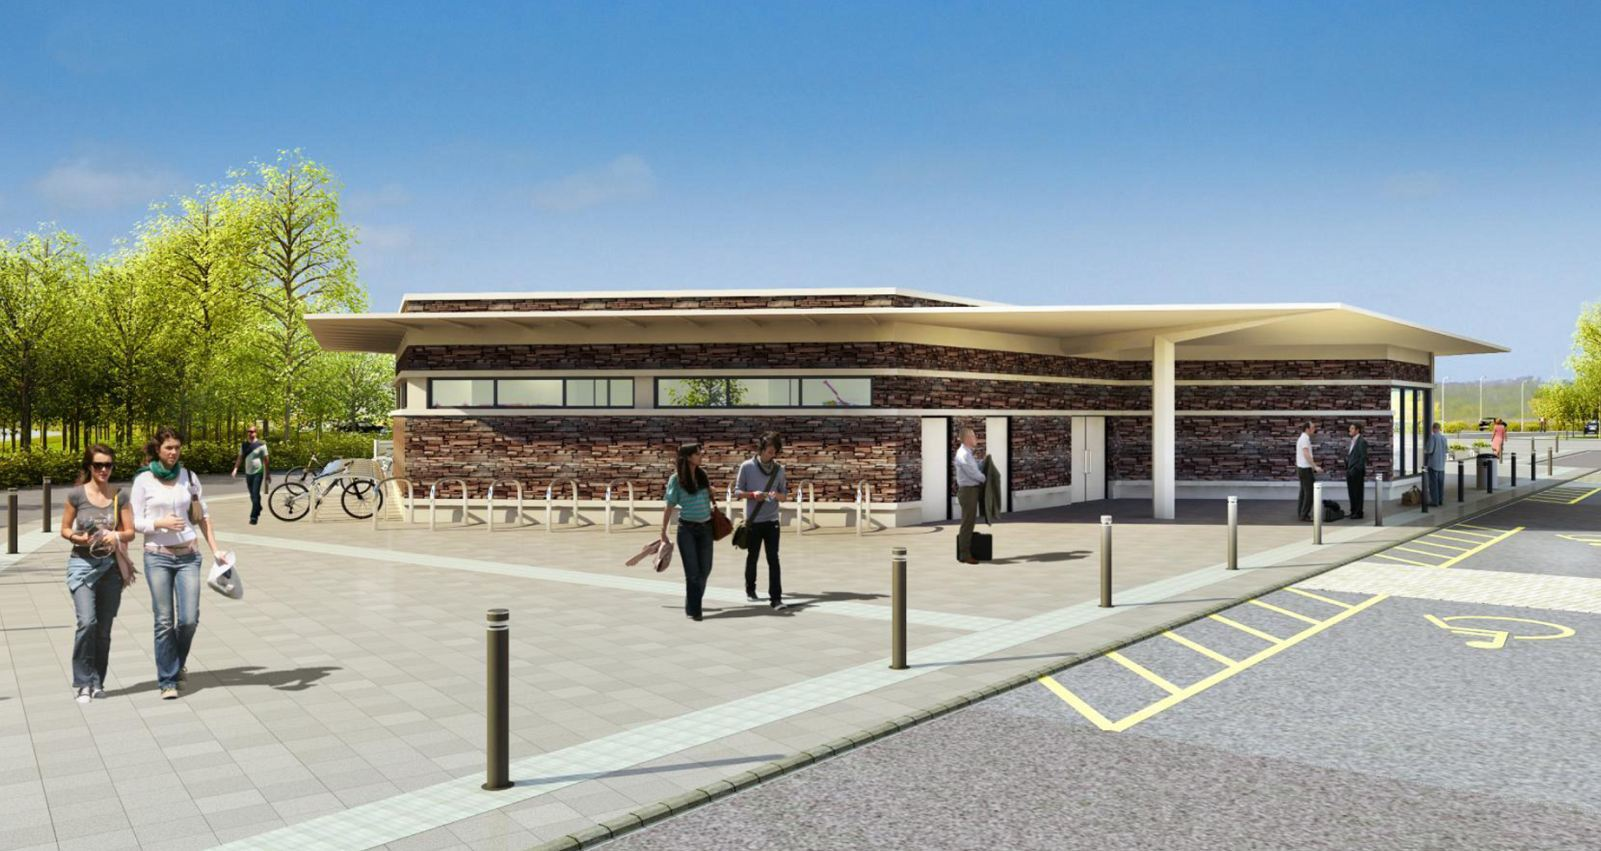 An artist impression of the proposed Park and Ride facilities